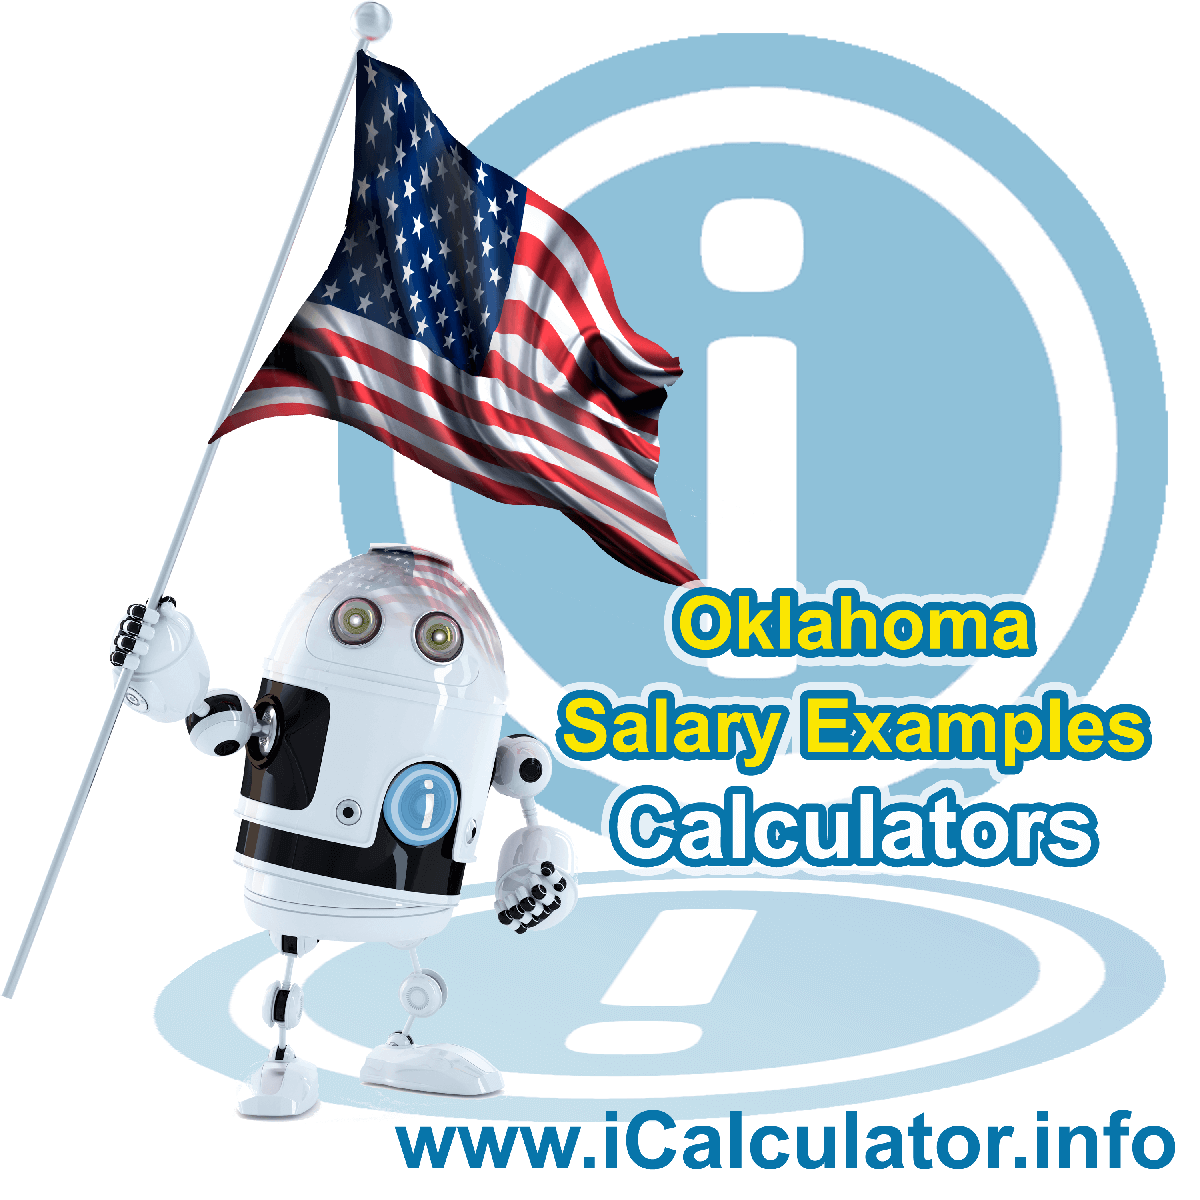 Oklahoma Salary Example for $180.00 in 2020 | iCalculator | $180.00 salary example for employee and employer paying Oklahoma State tincome taxes. Detailed salary after tax calculation including Oklahoma State Tax, Federal State Tax, Medicare Deductions, Social Security, Capital Gains and other income tax and salary deductions complete with supporting Oklahoma state tax tables